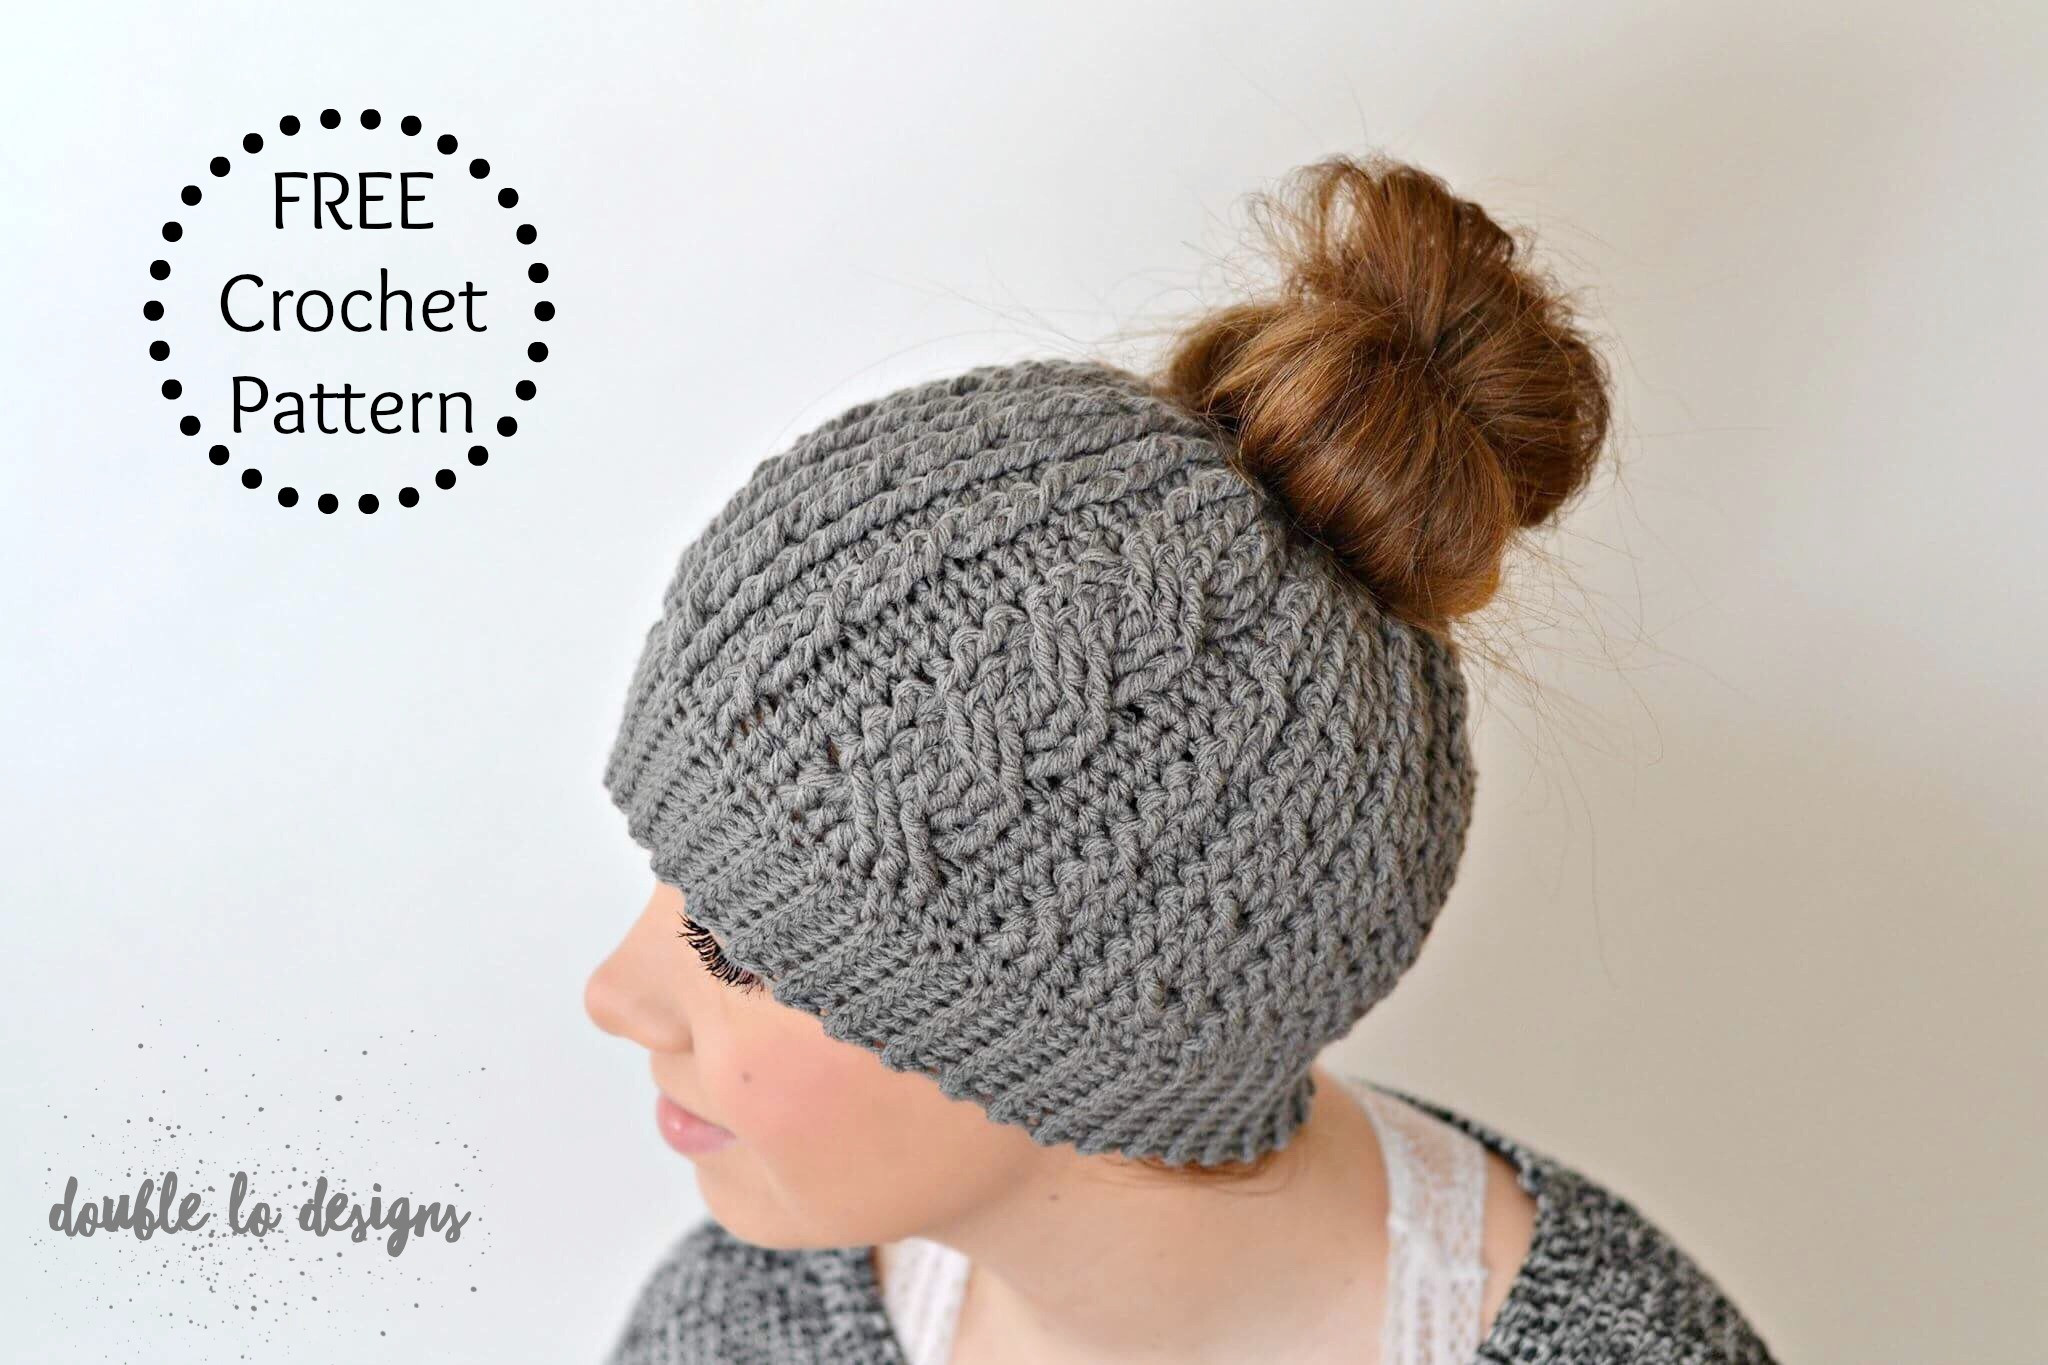 Free Crochet Pattern Crochet Cabled Messy Bun Hat Adult